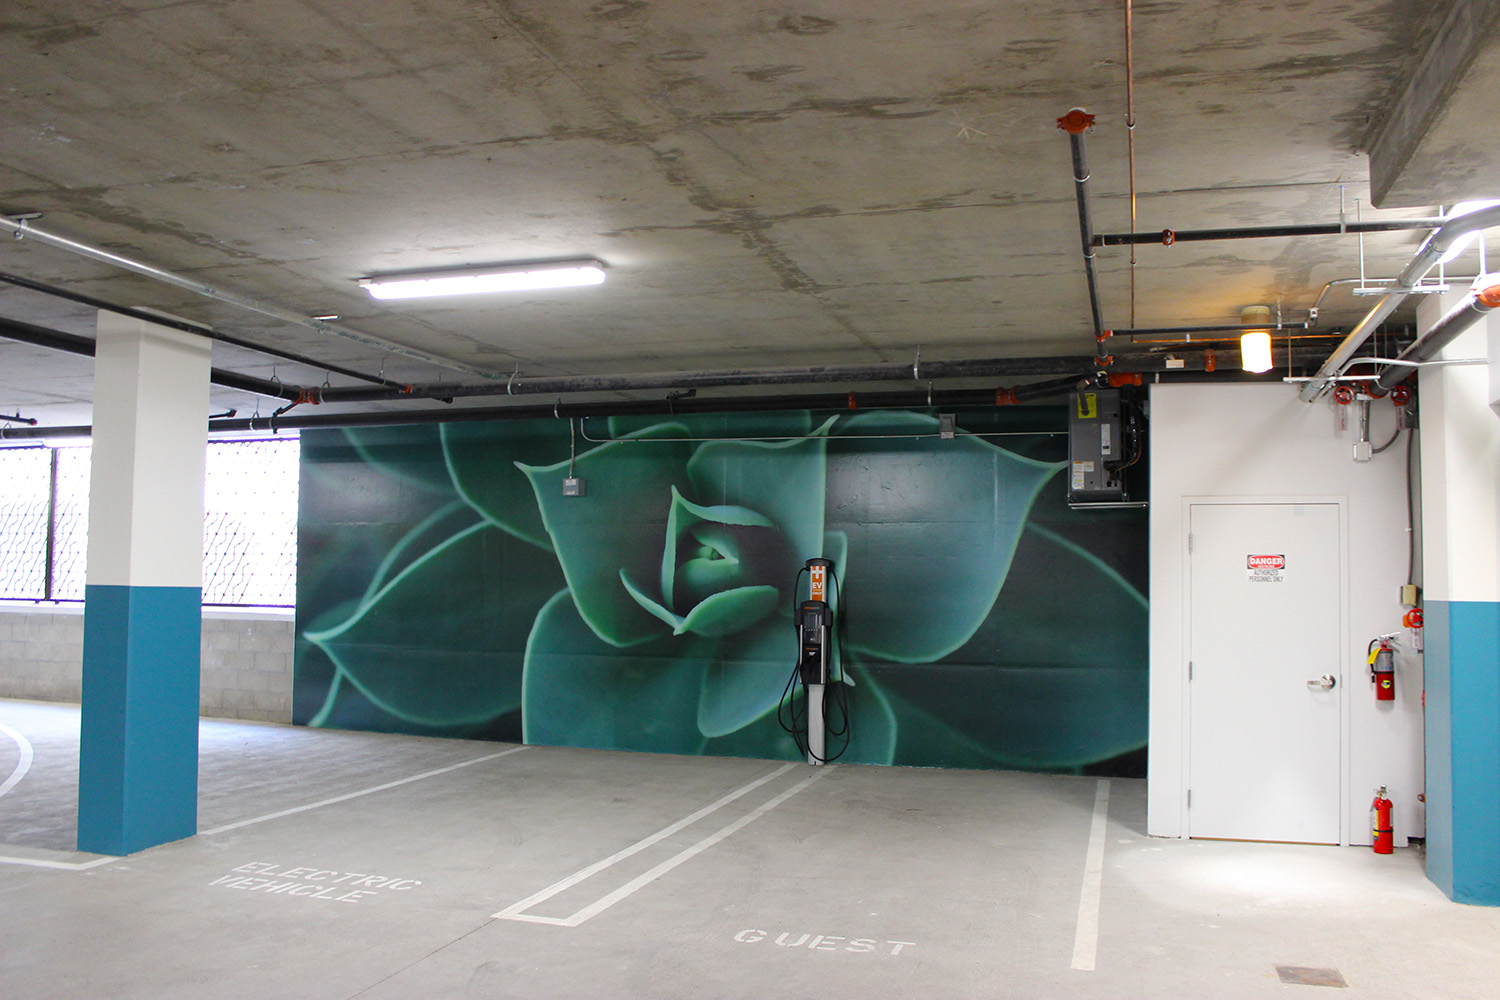 Portable Parking Garage >> Concrete Graphics and Garage Floor Decals